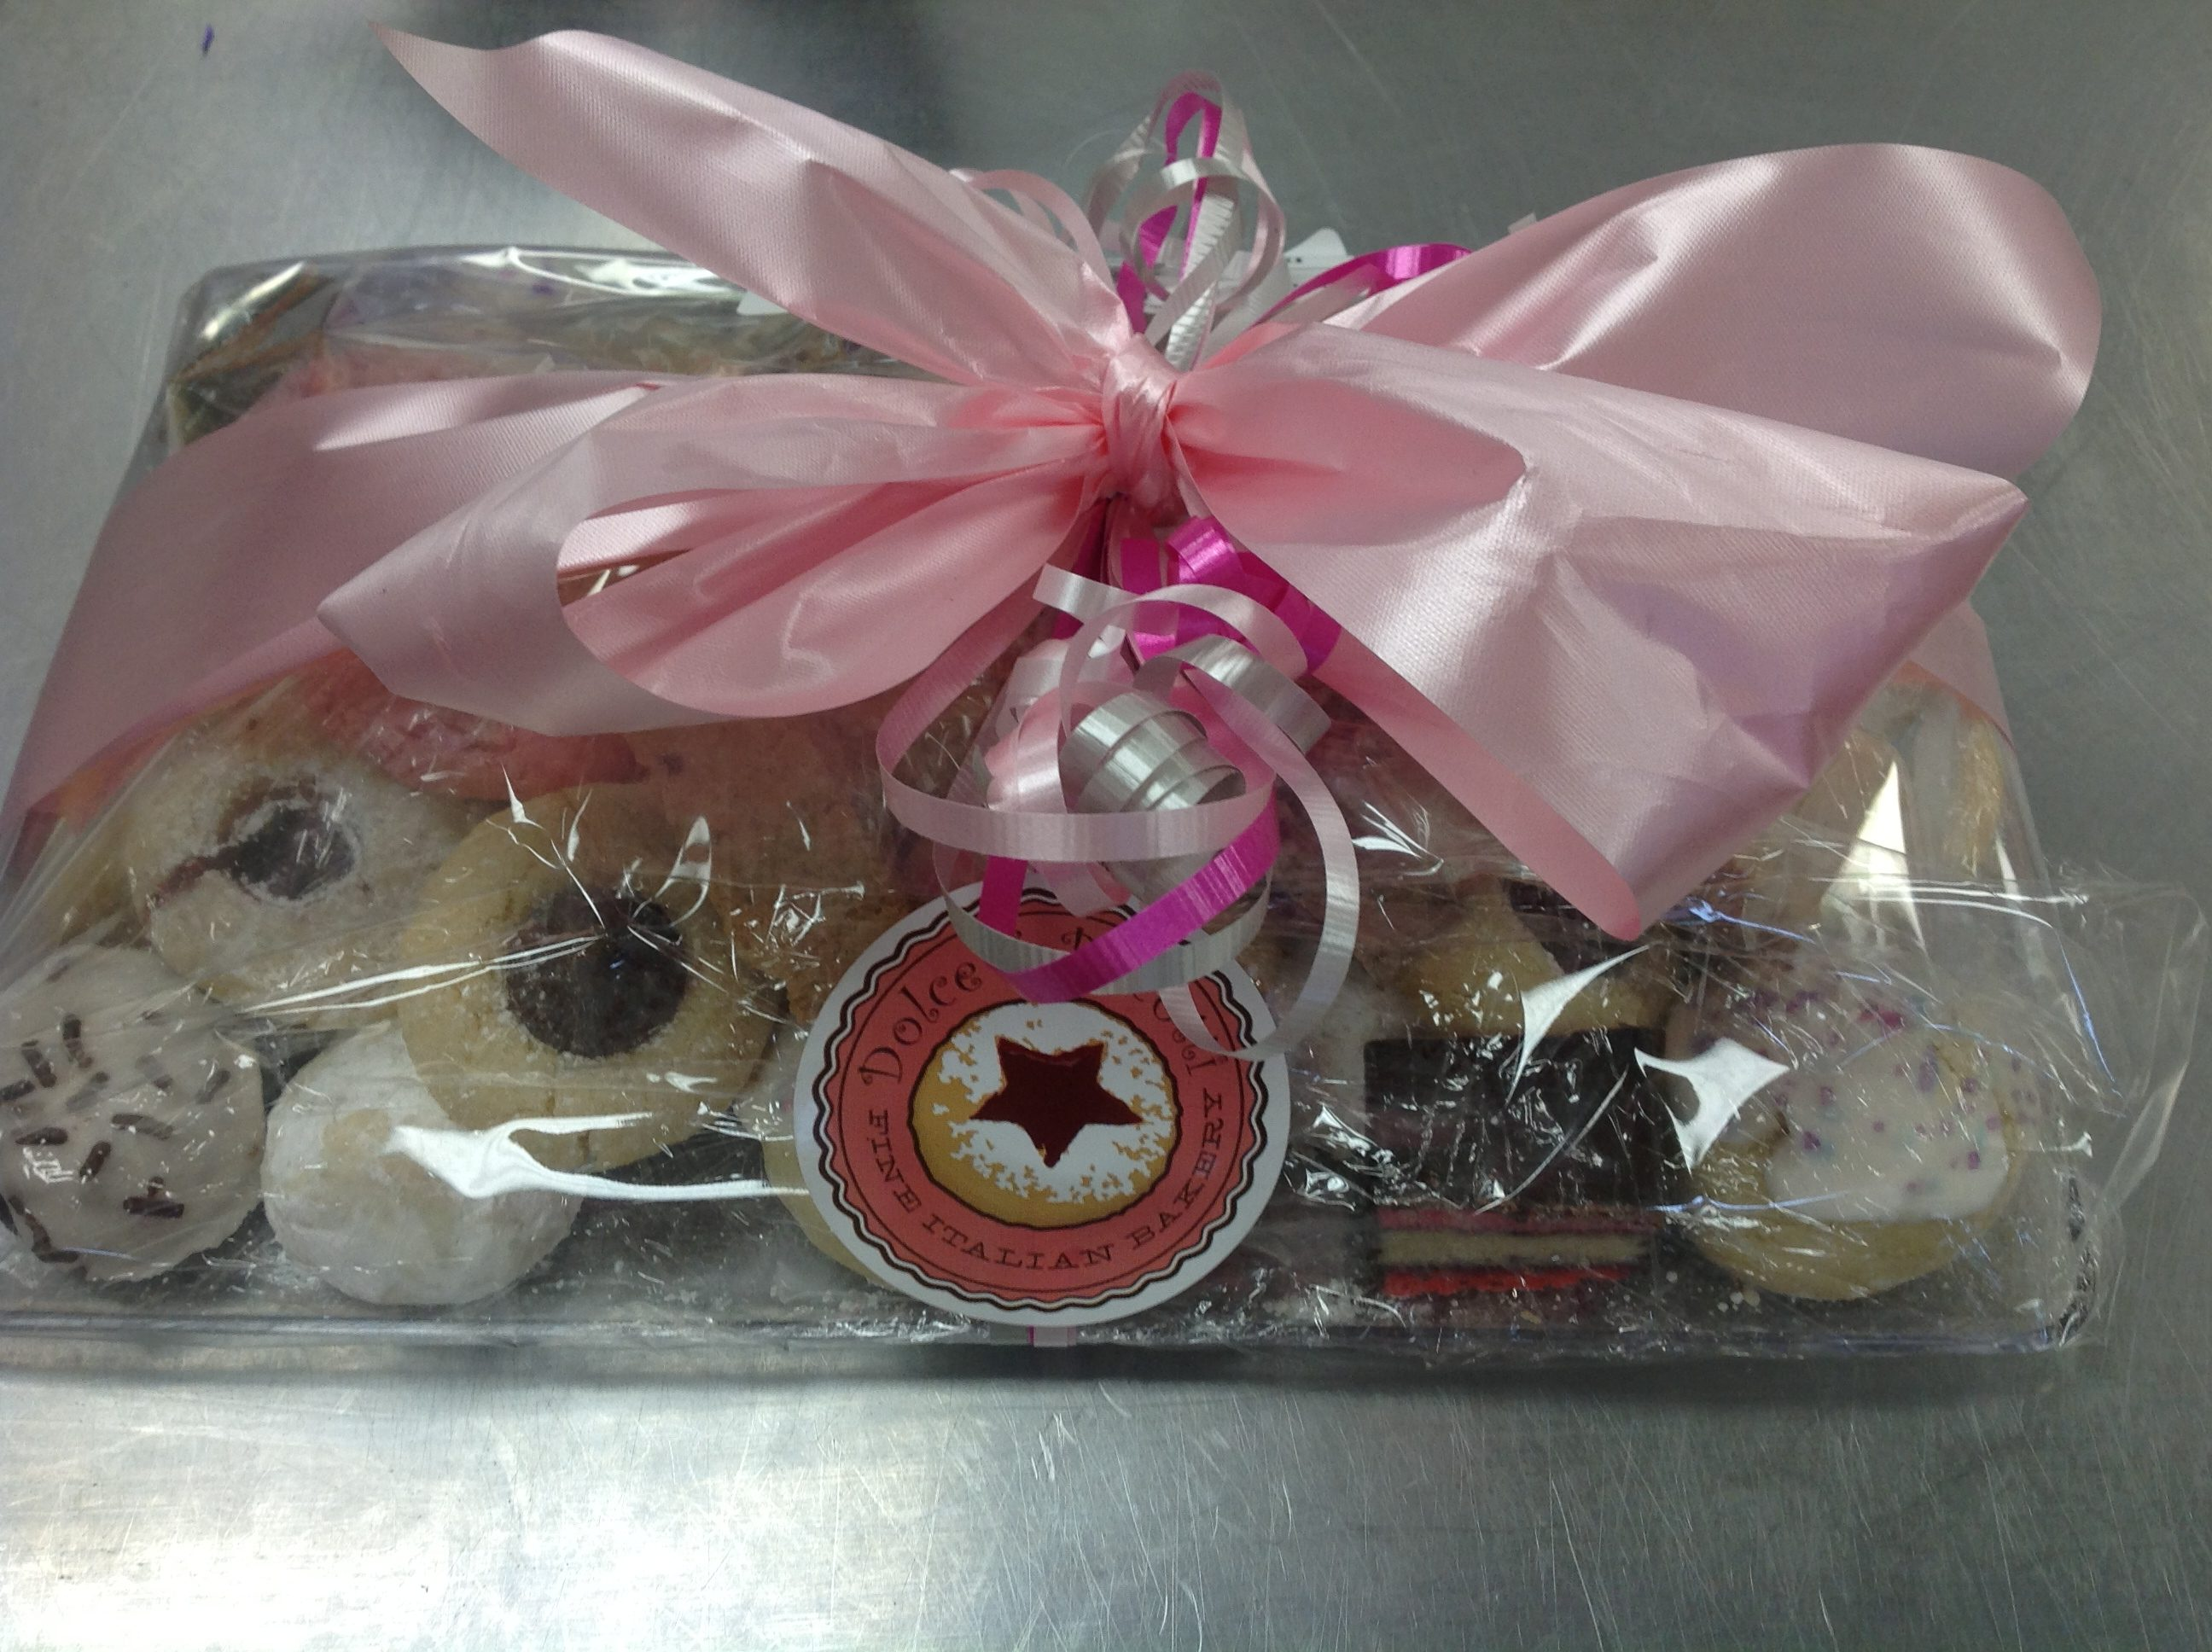 Cookie platters at Dolce and Biscotti Italian Bakery